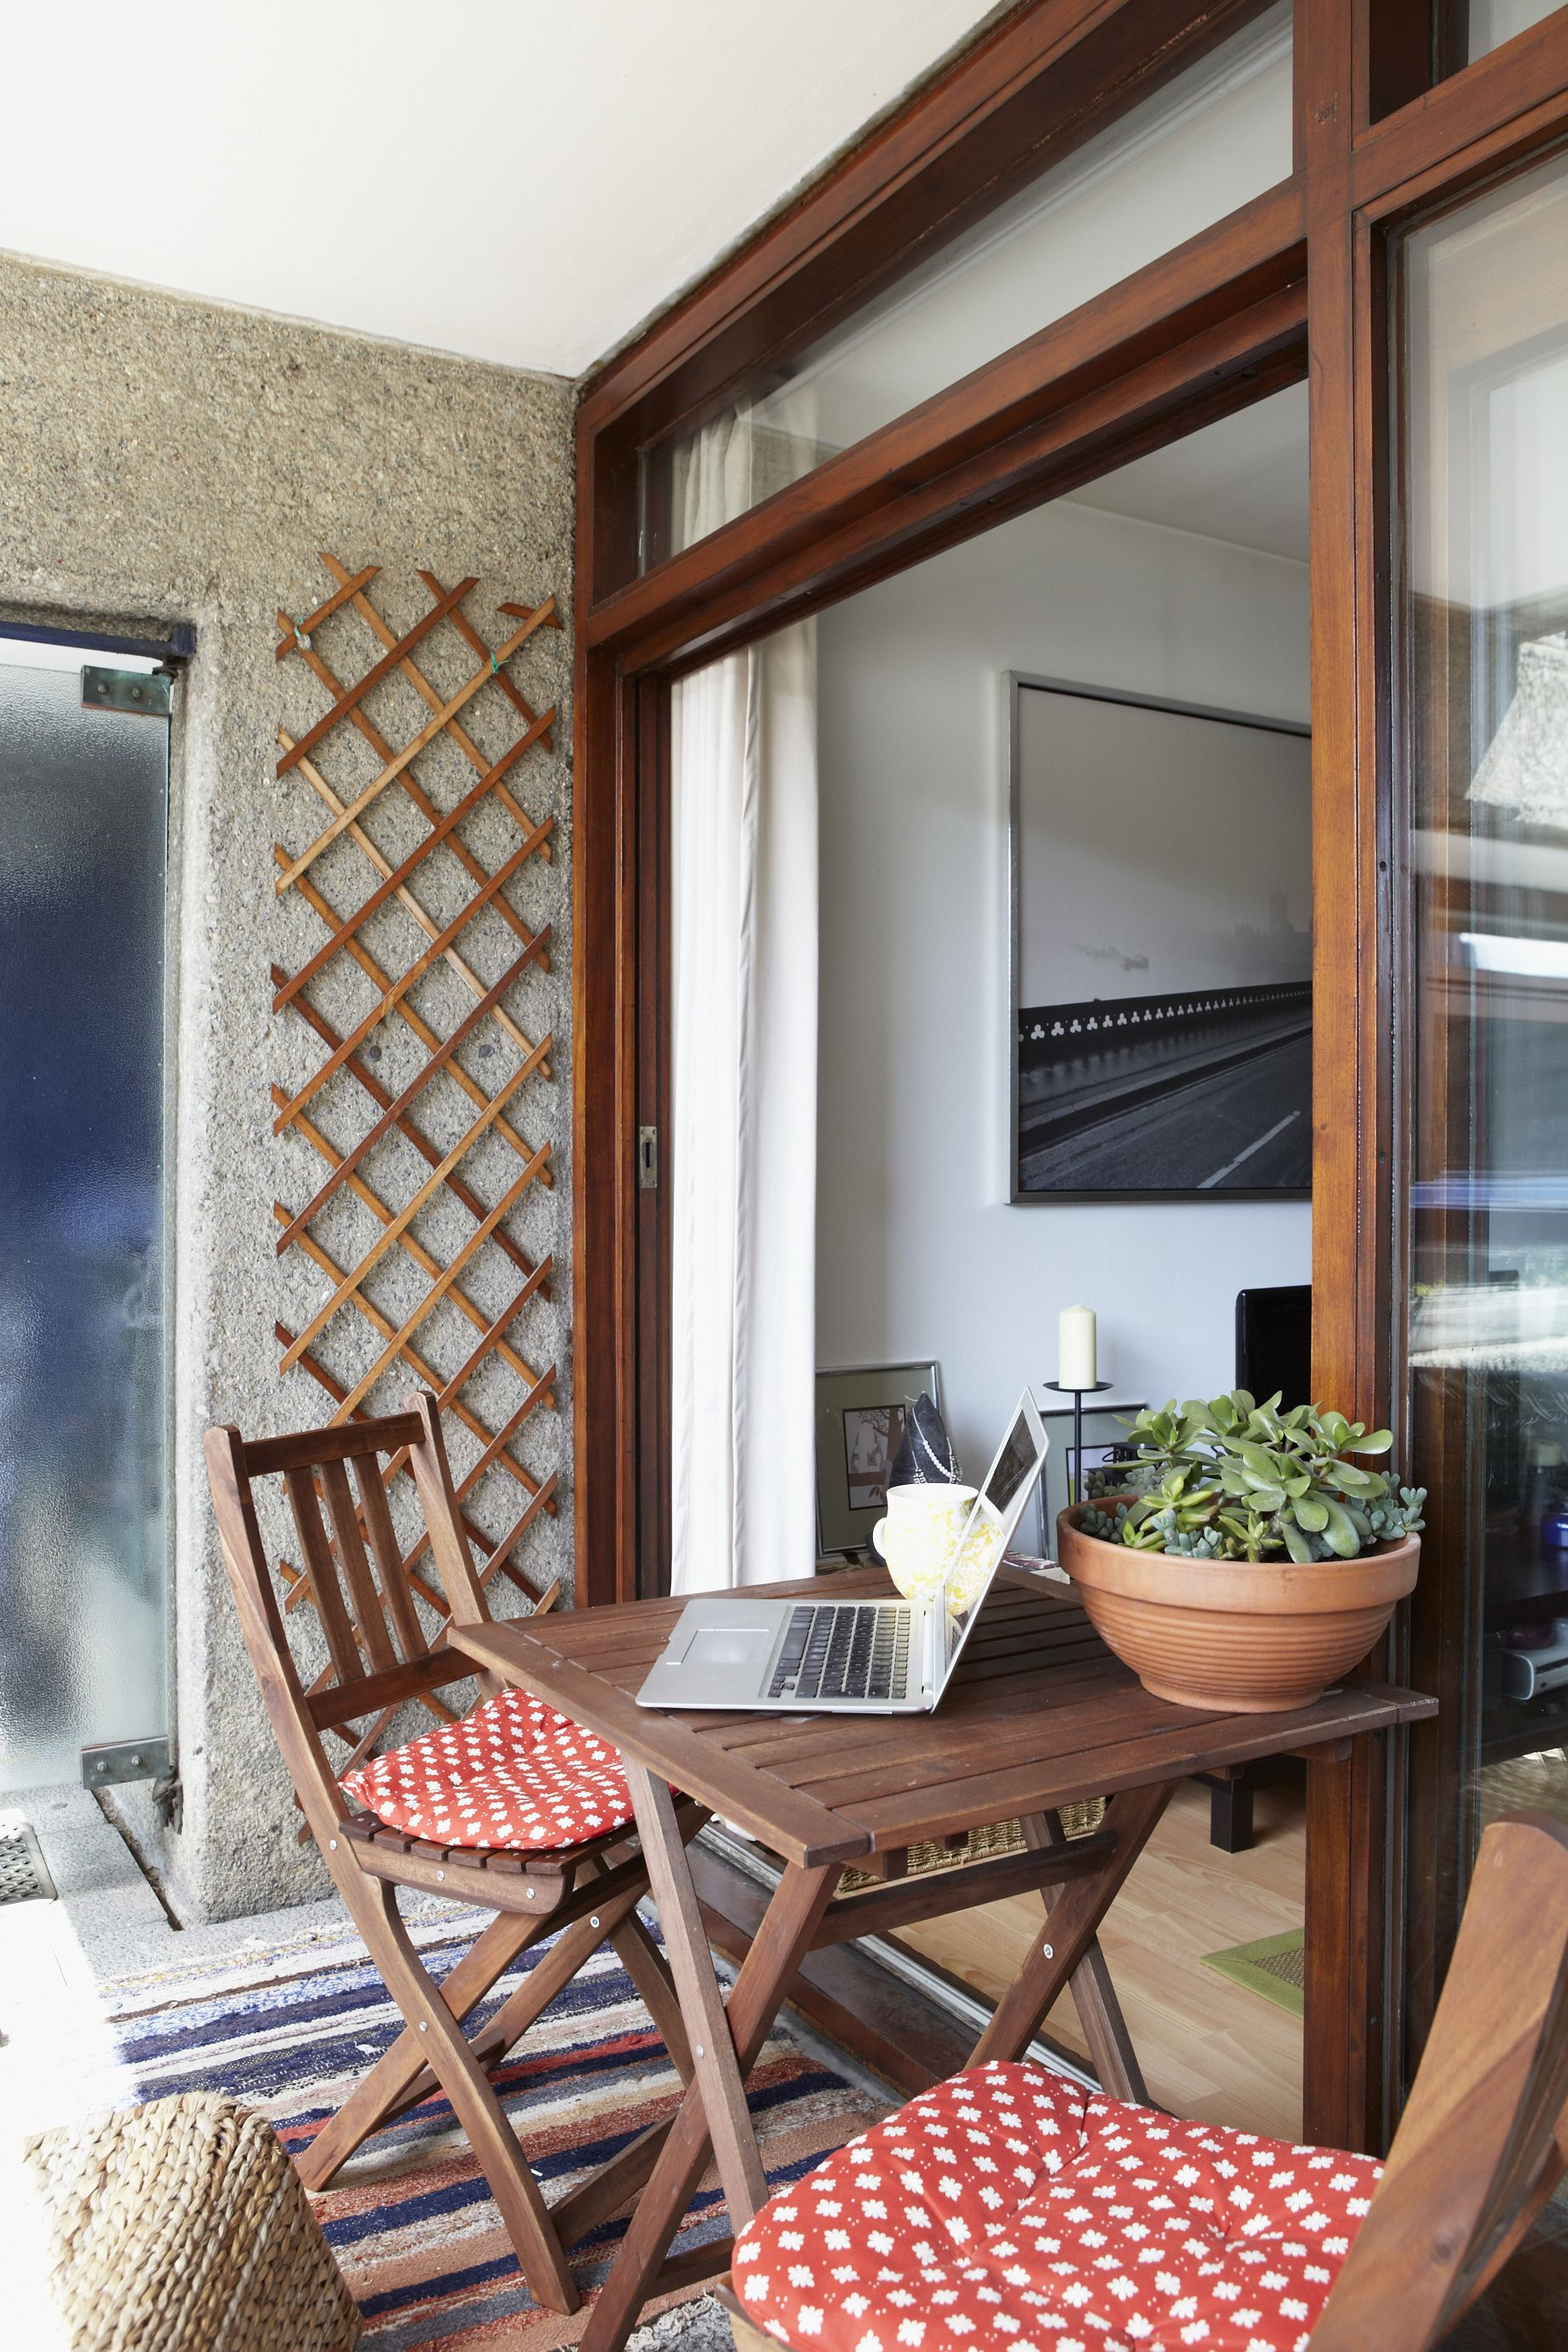 1000+ images about Terrace on Pinterest